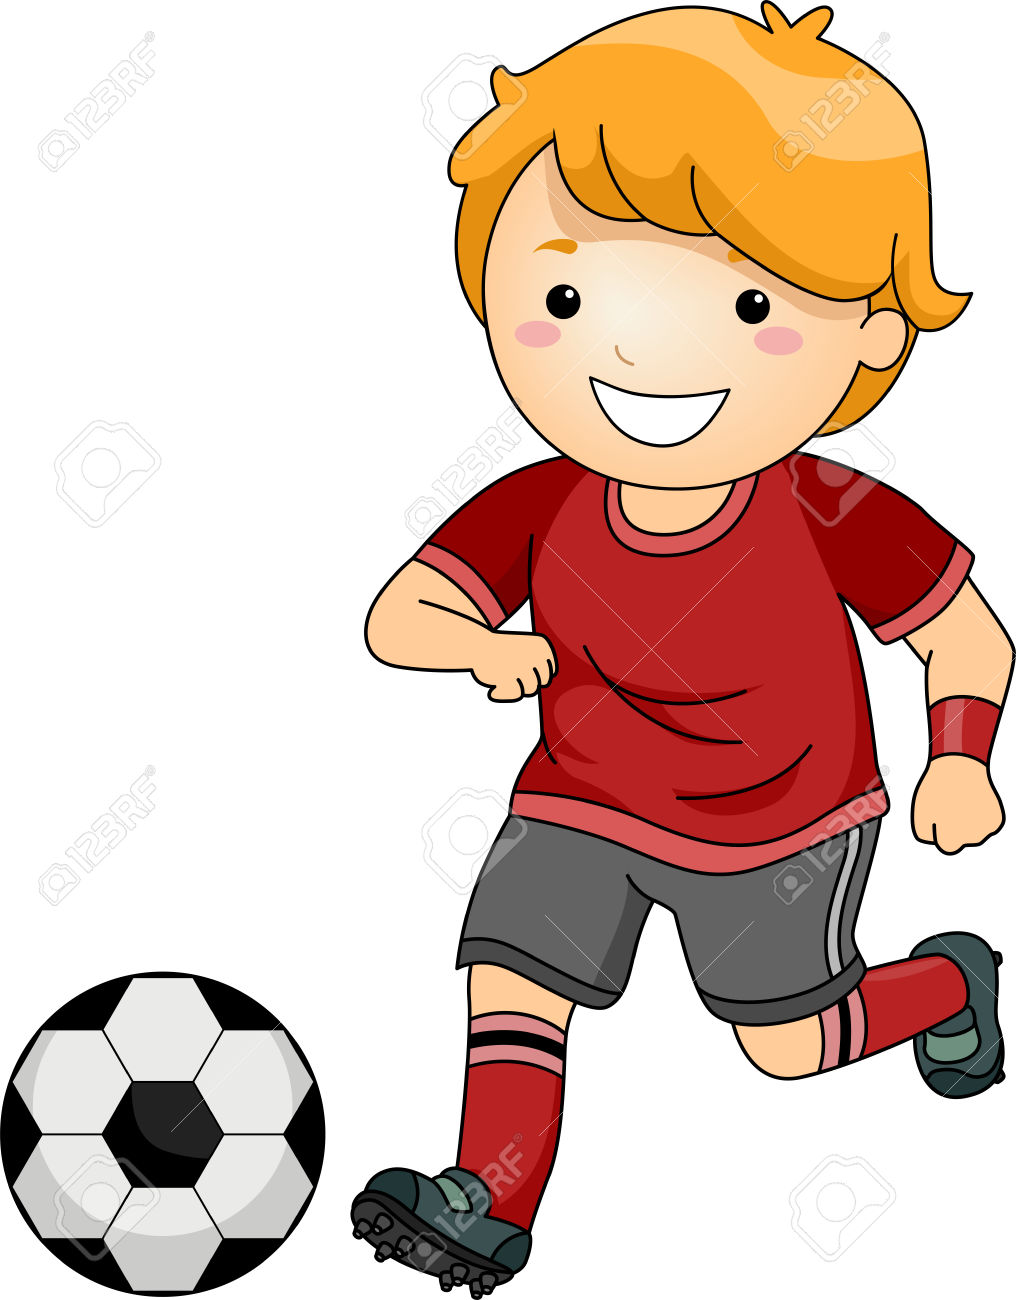 1016x1300 Soccer Exercise Clipart, Explore Pictures